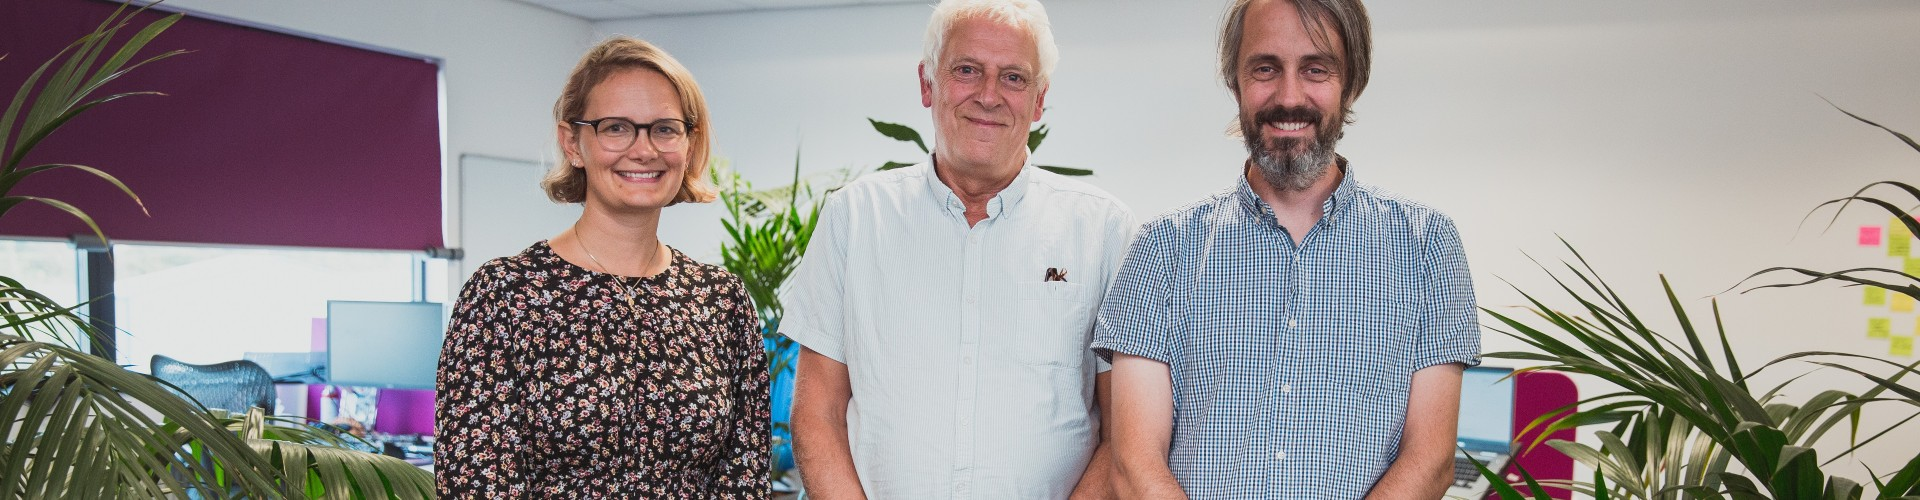 Three people in an office smiling at the camera